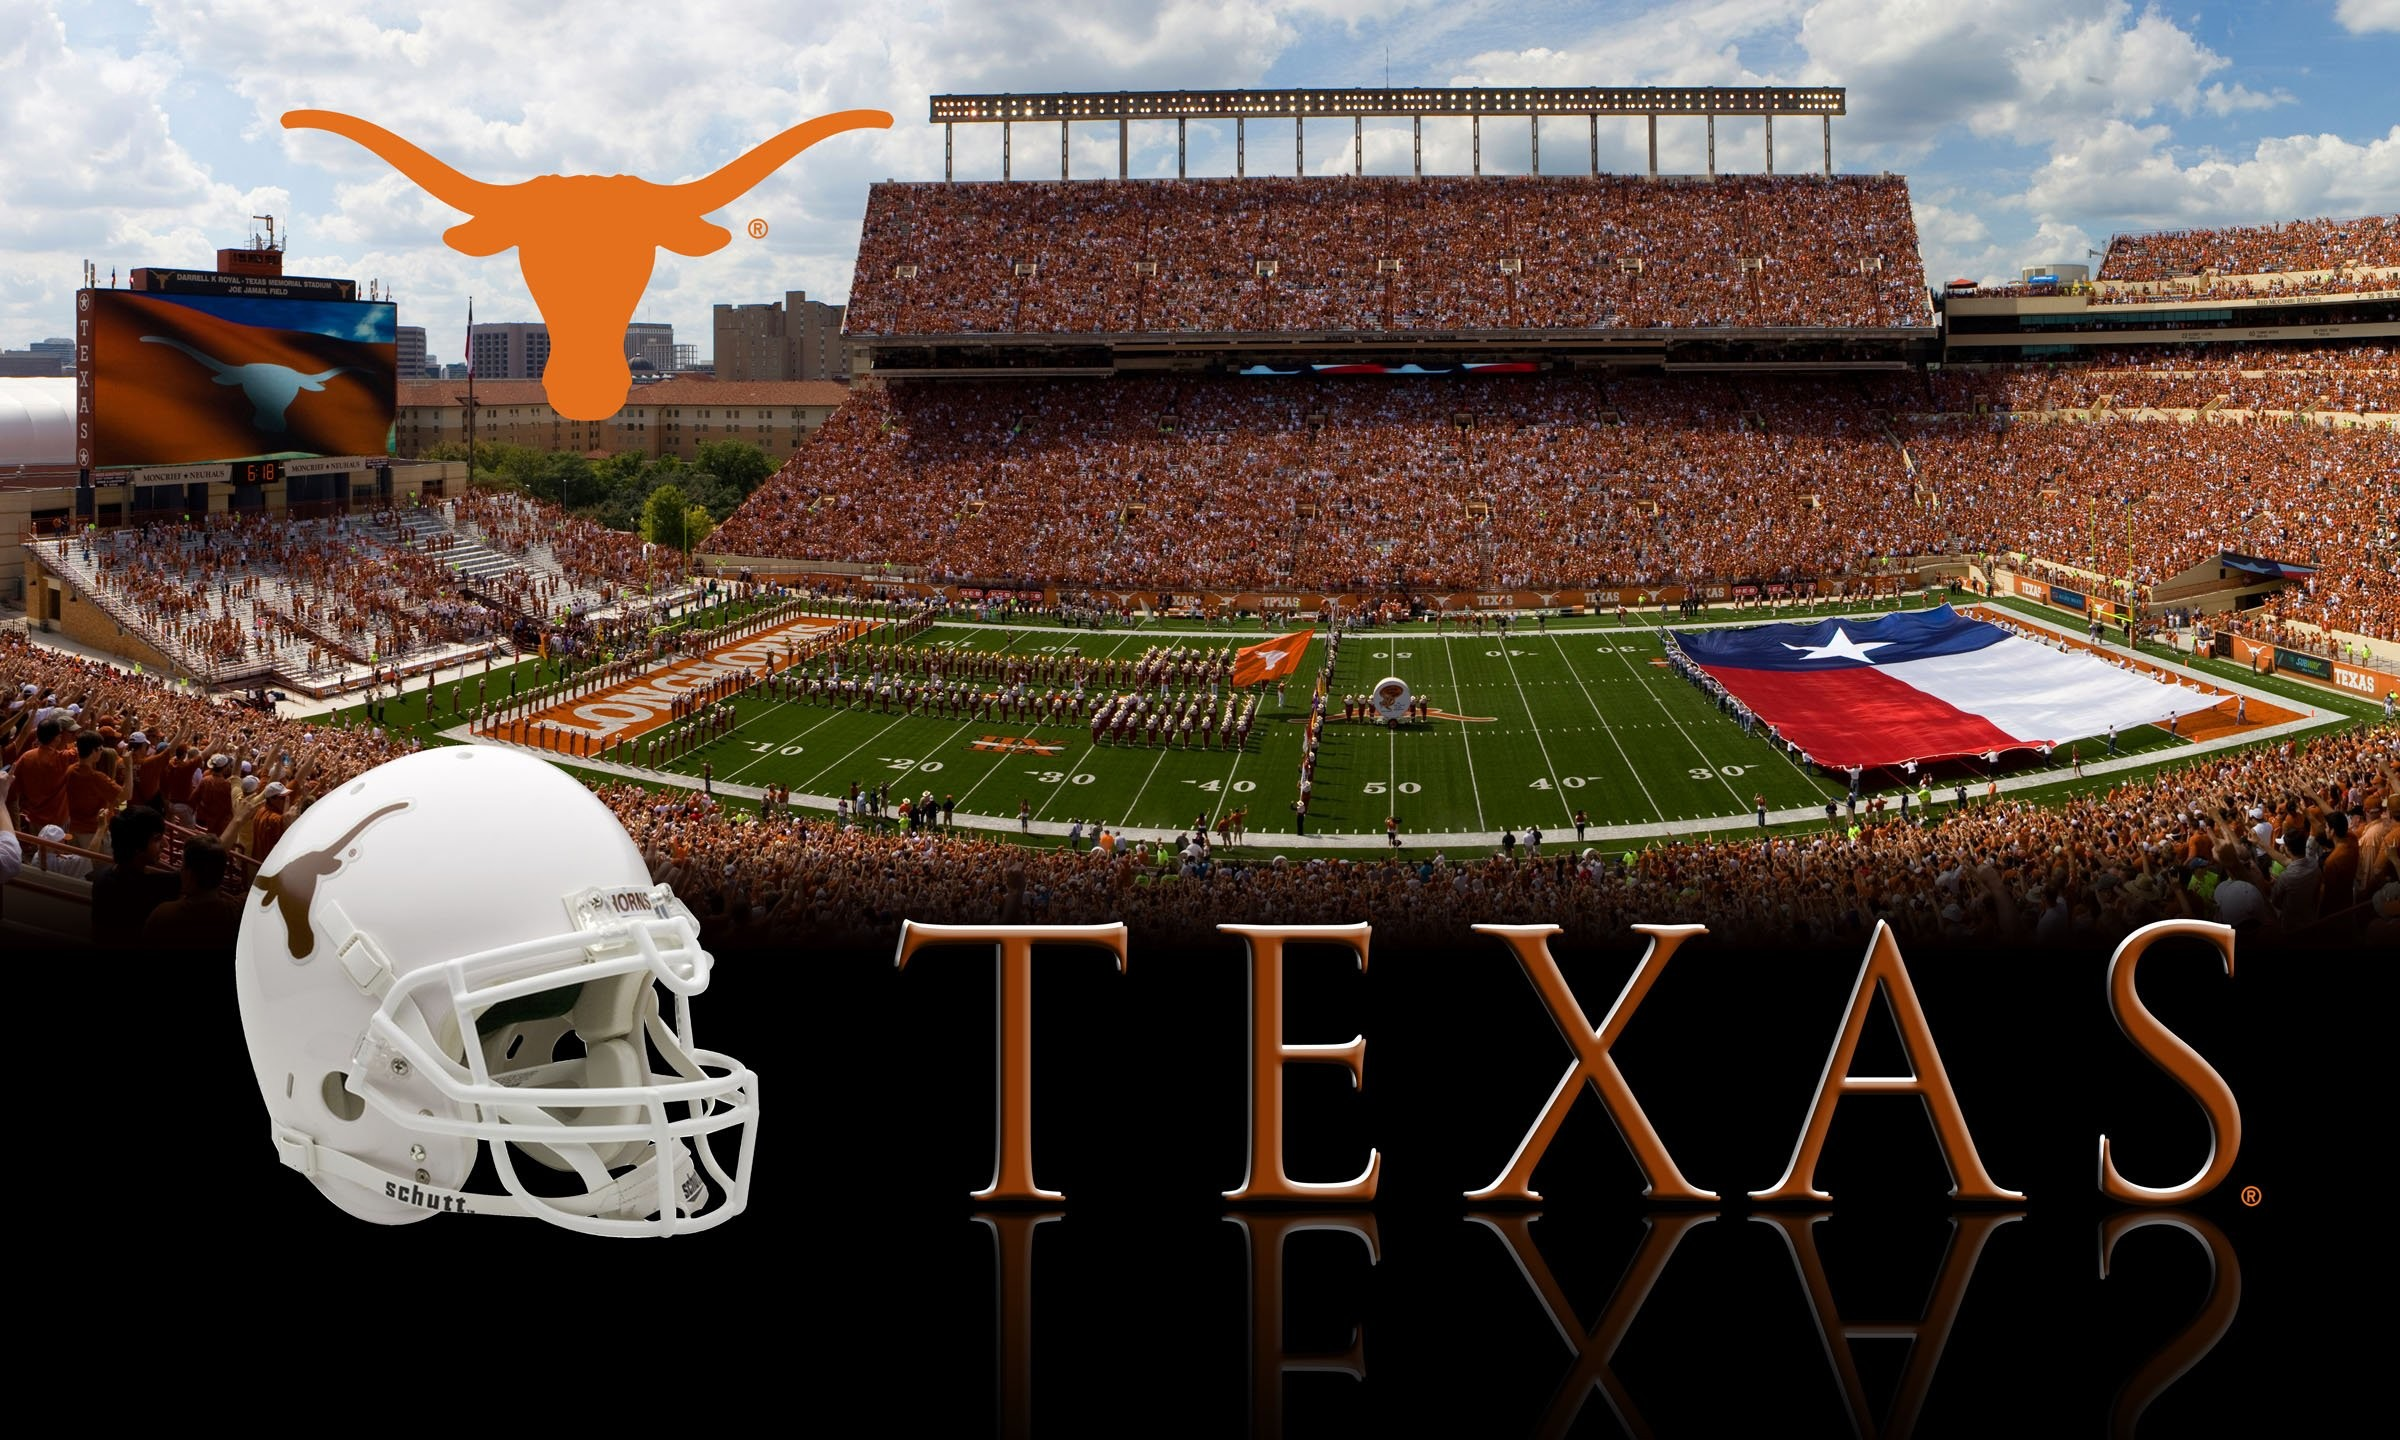 2400x1440 wallpaper.wiki-Texas-Longhorns-Football-Image-HD-PIC-